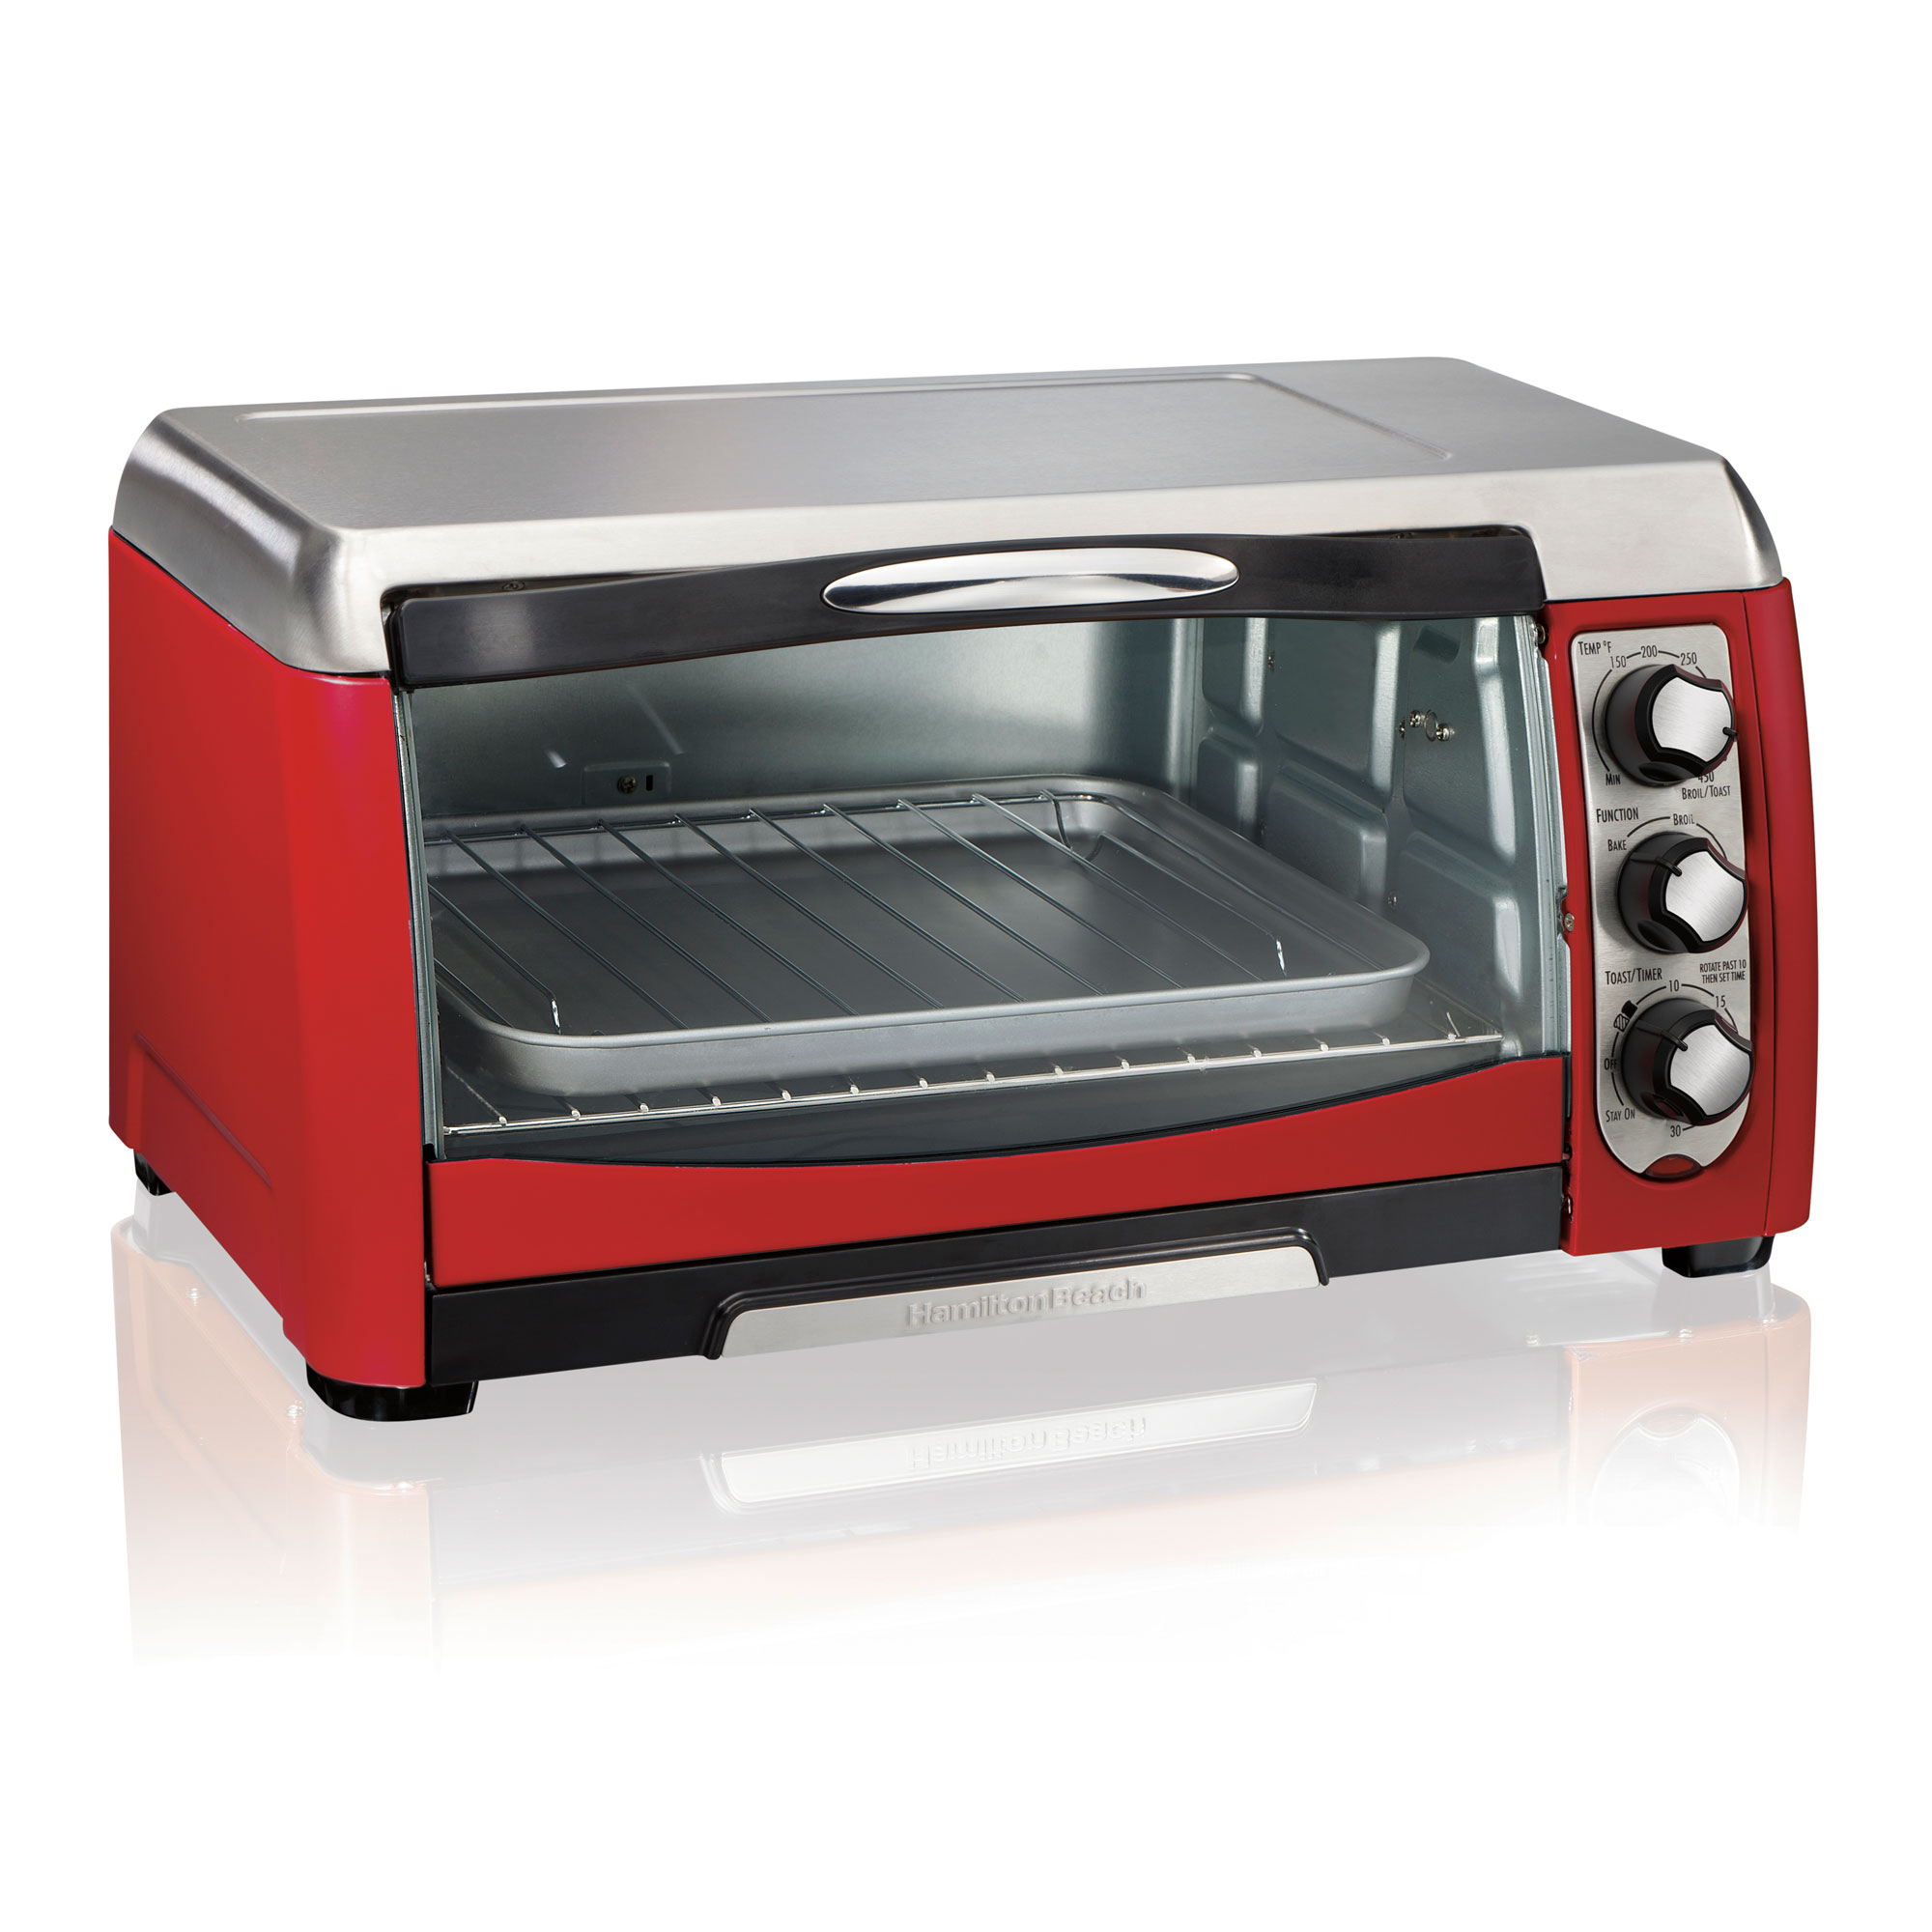 nib enlarge results chef toaster broiler better fast im betcheftstovn images click oven itm liter to